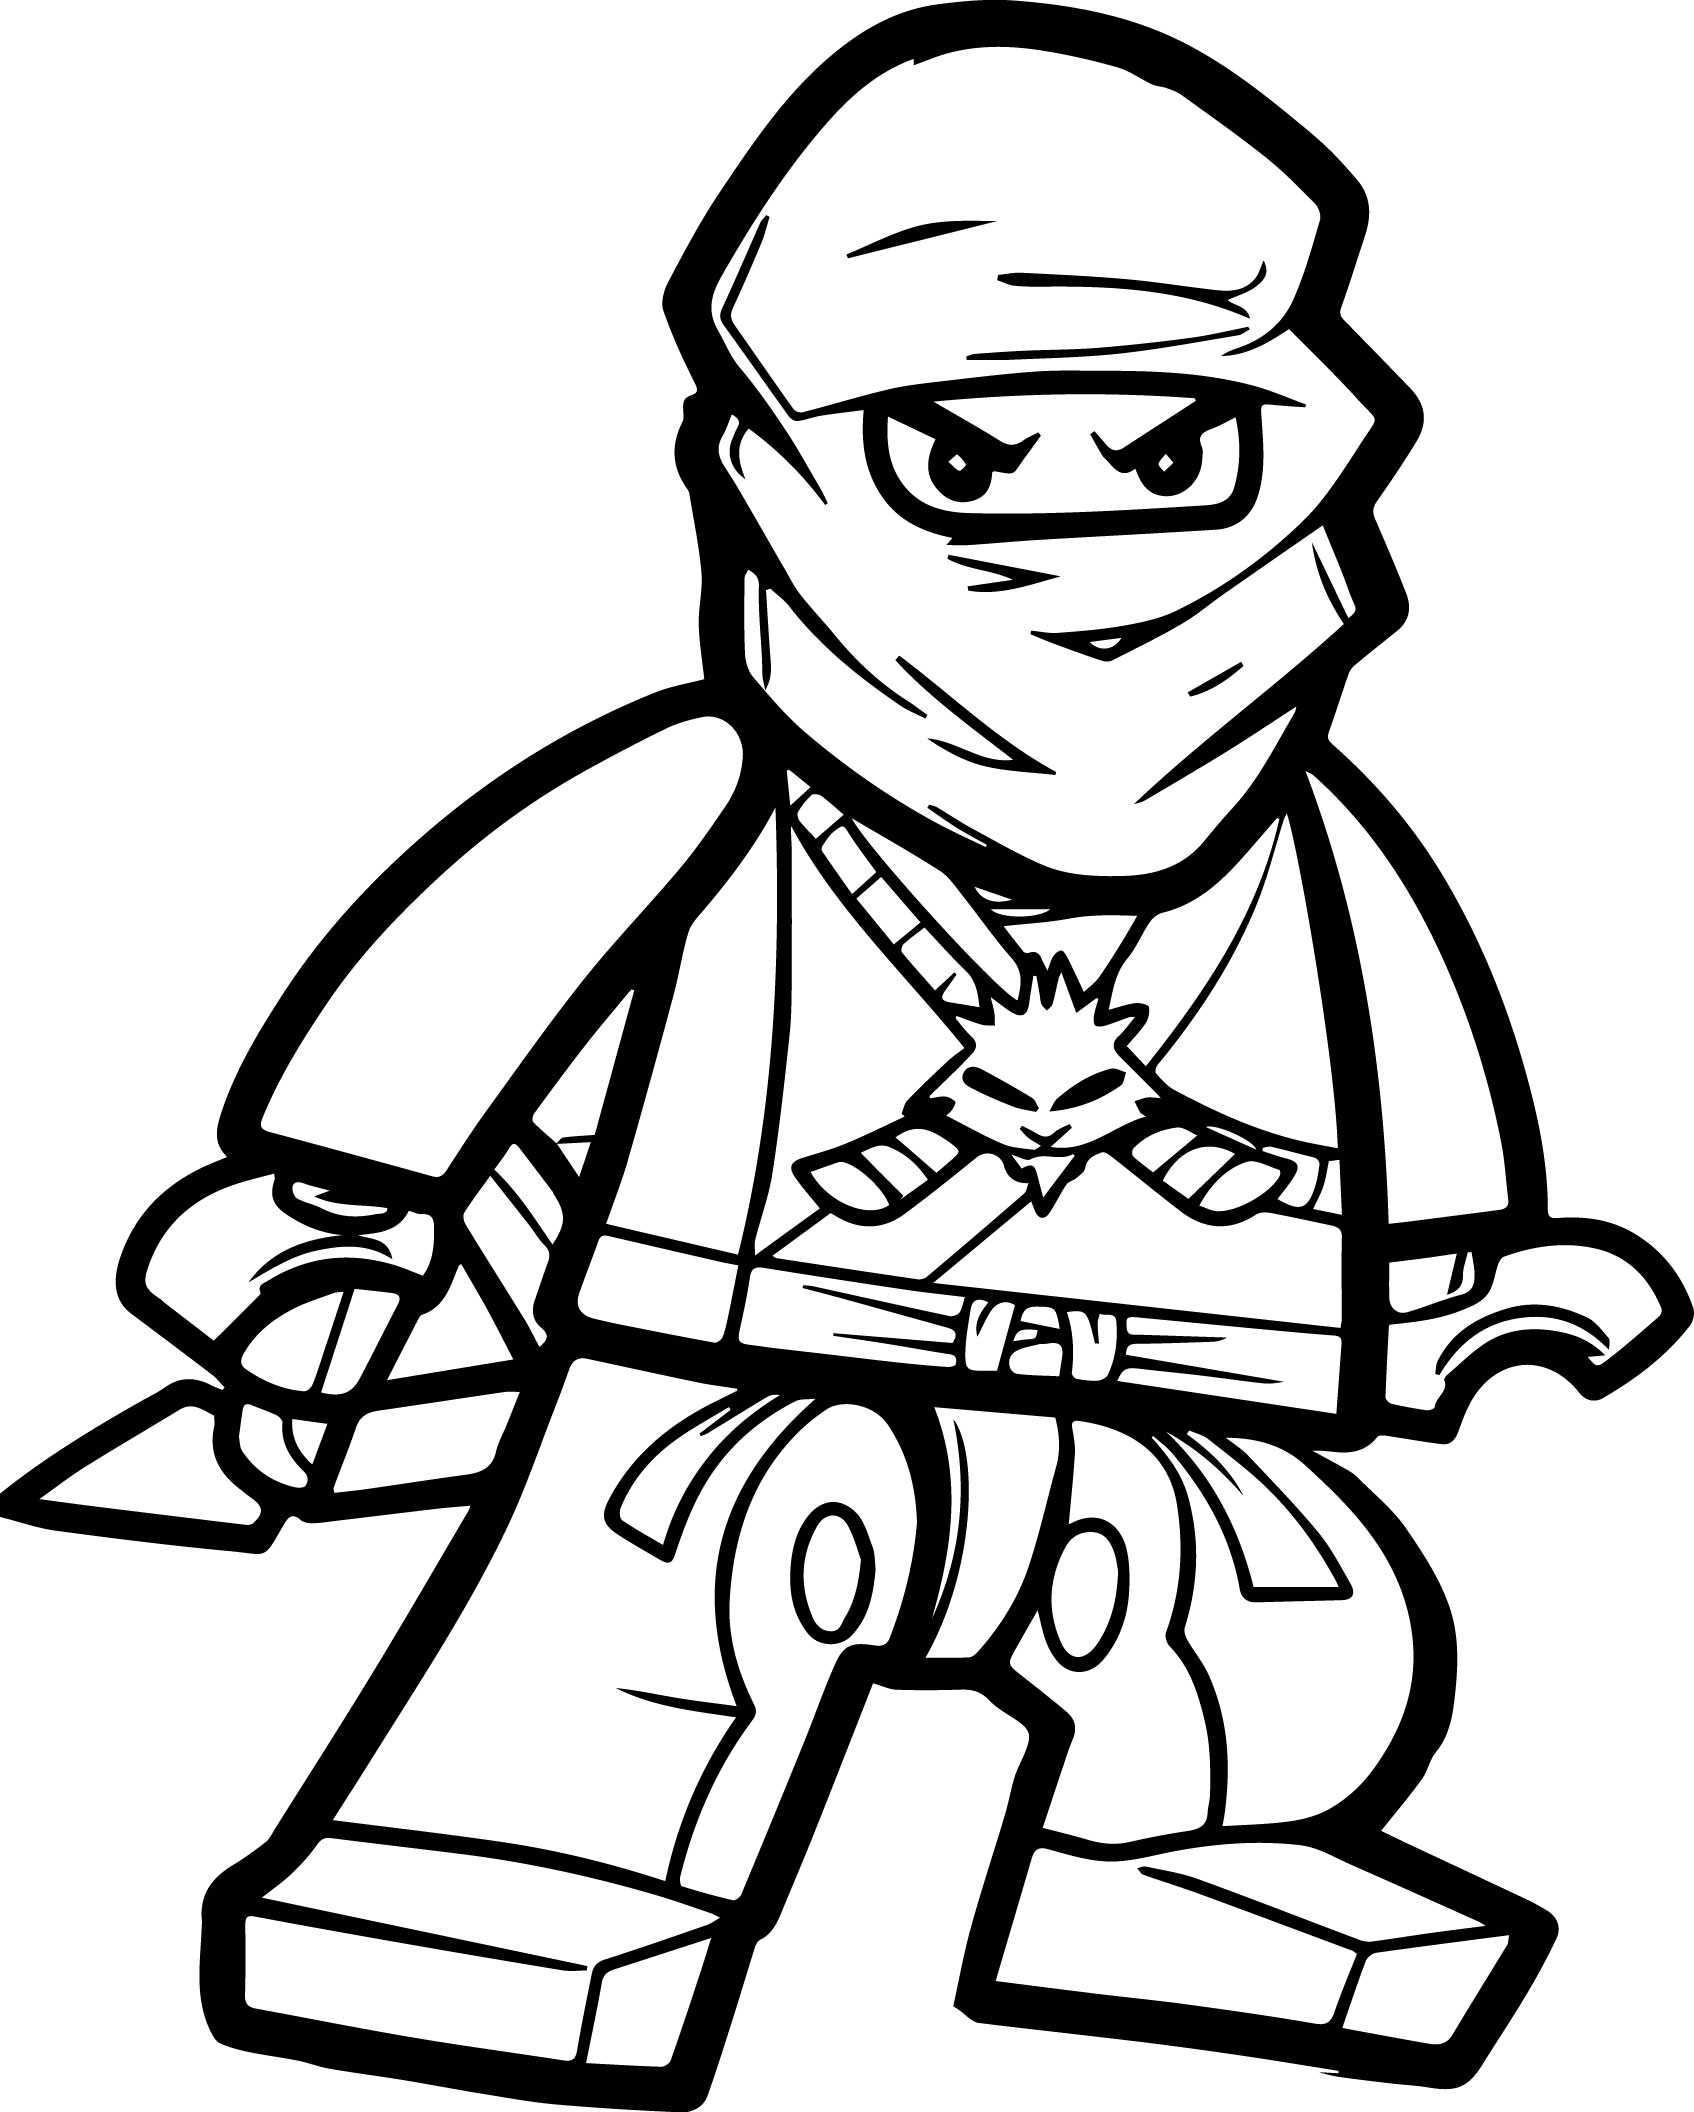 ninja cat coloring pages - photo#30